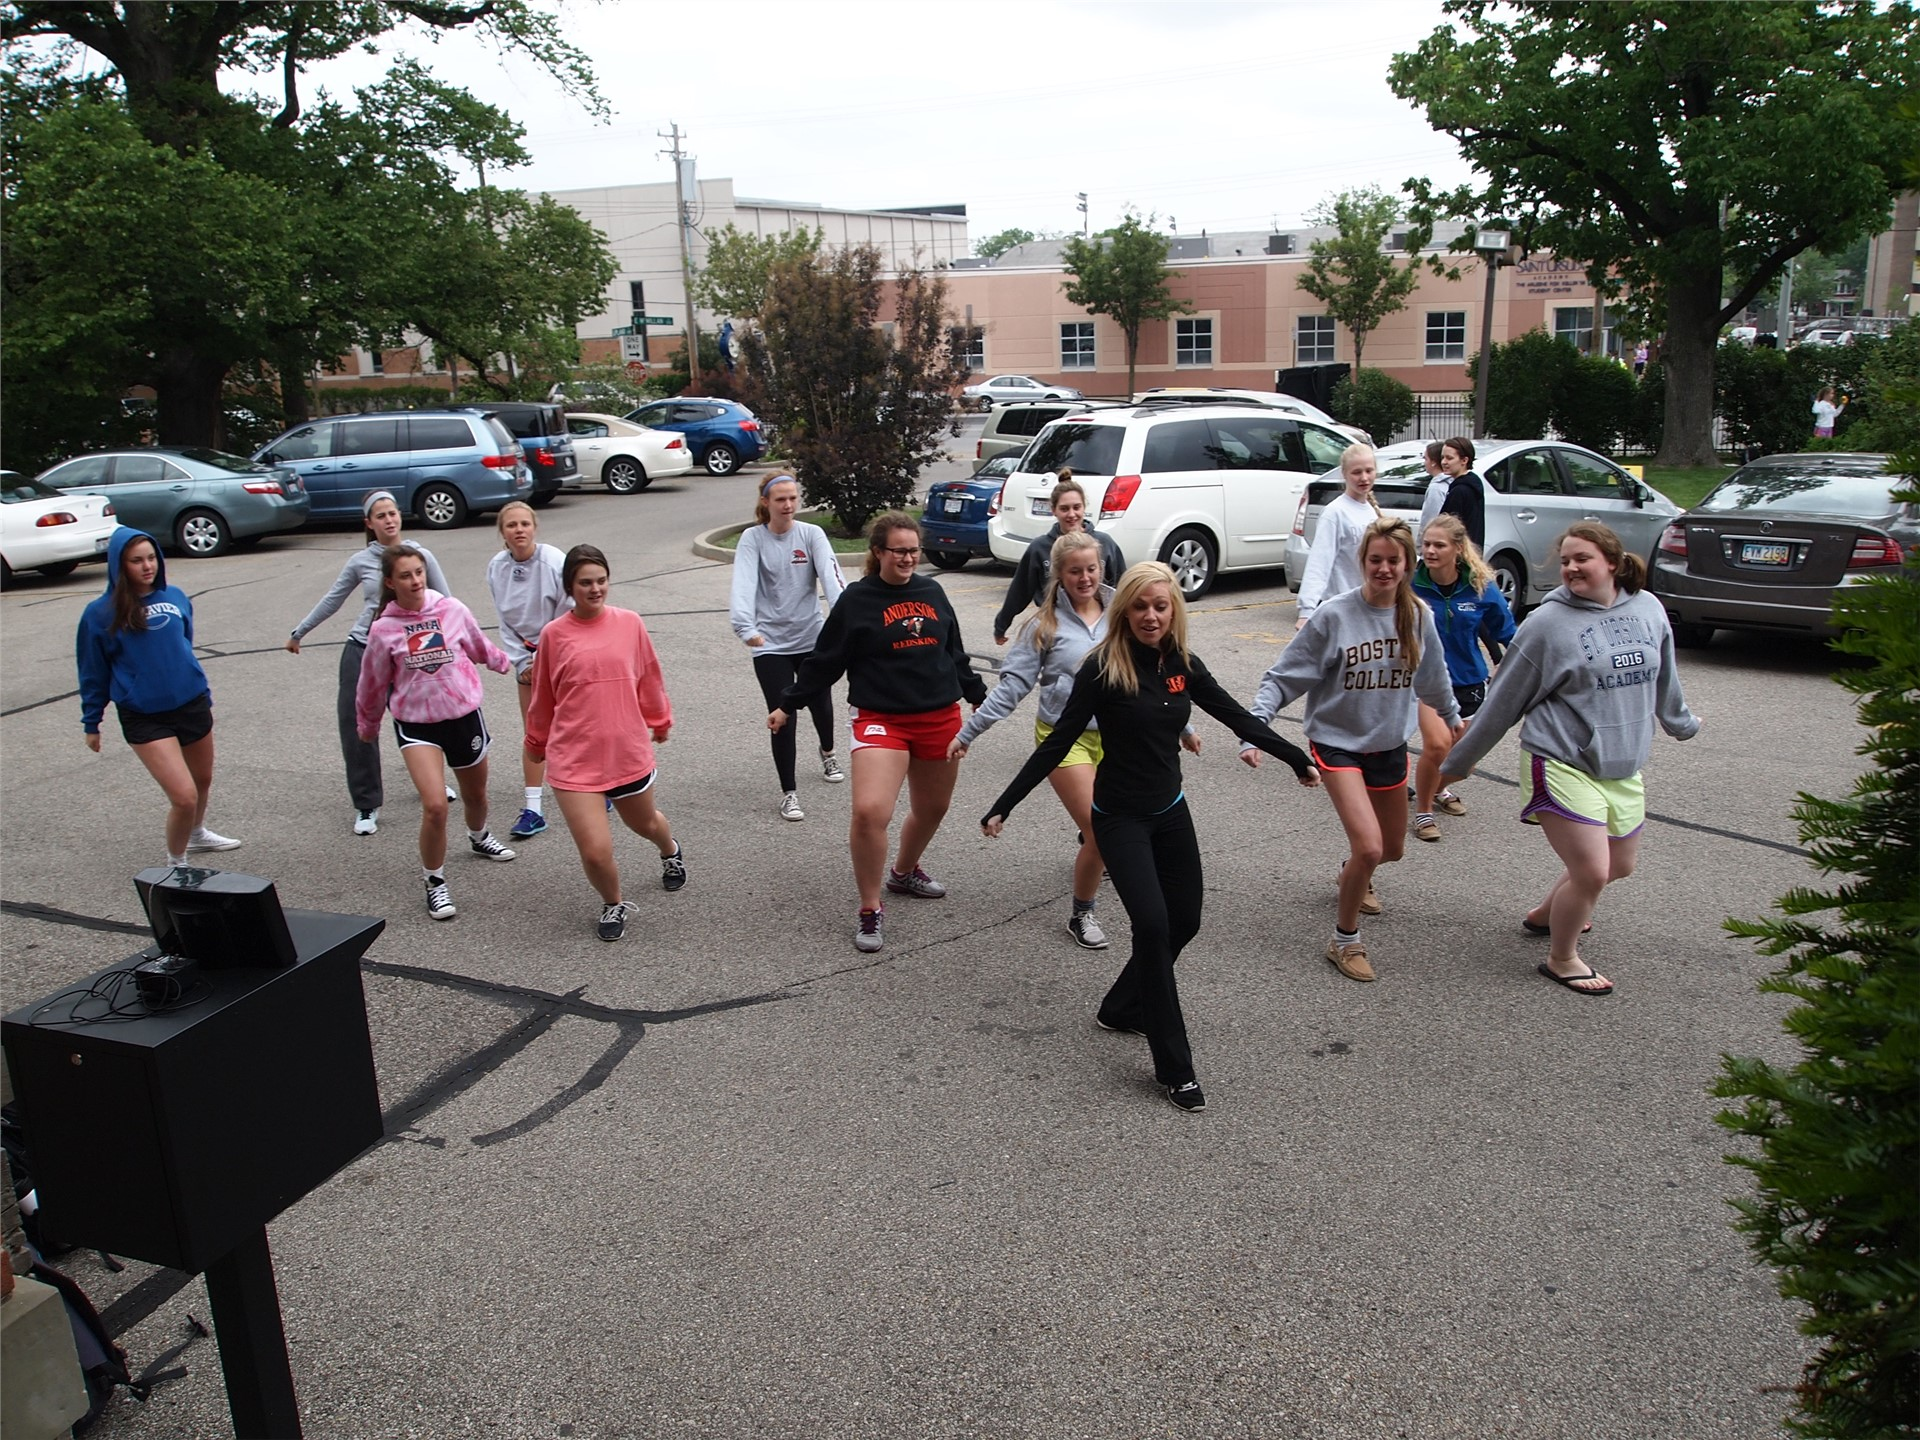 Some students took a dance break to help de-stress during final exams